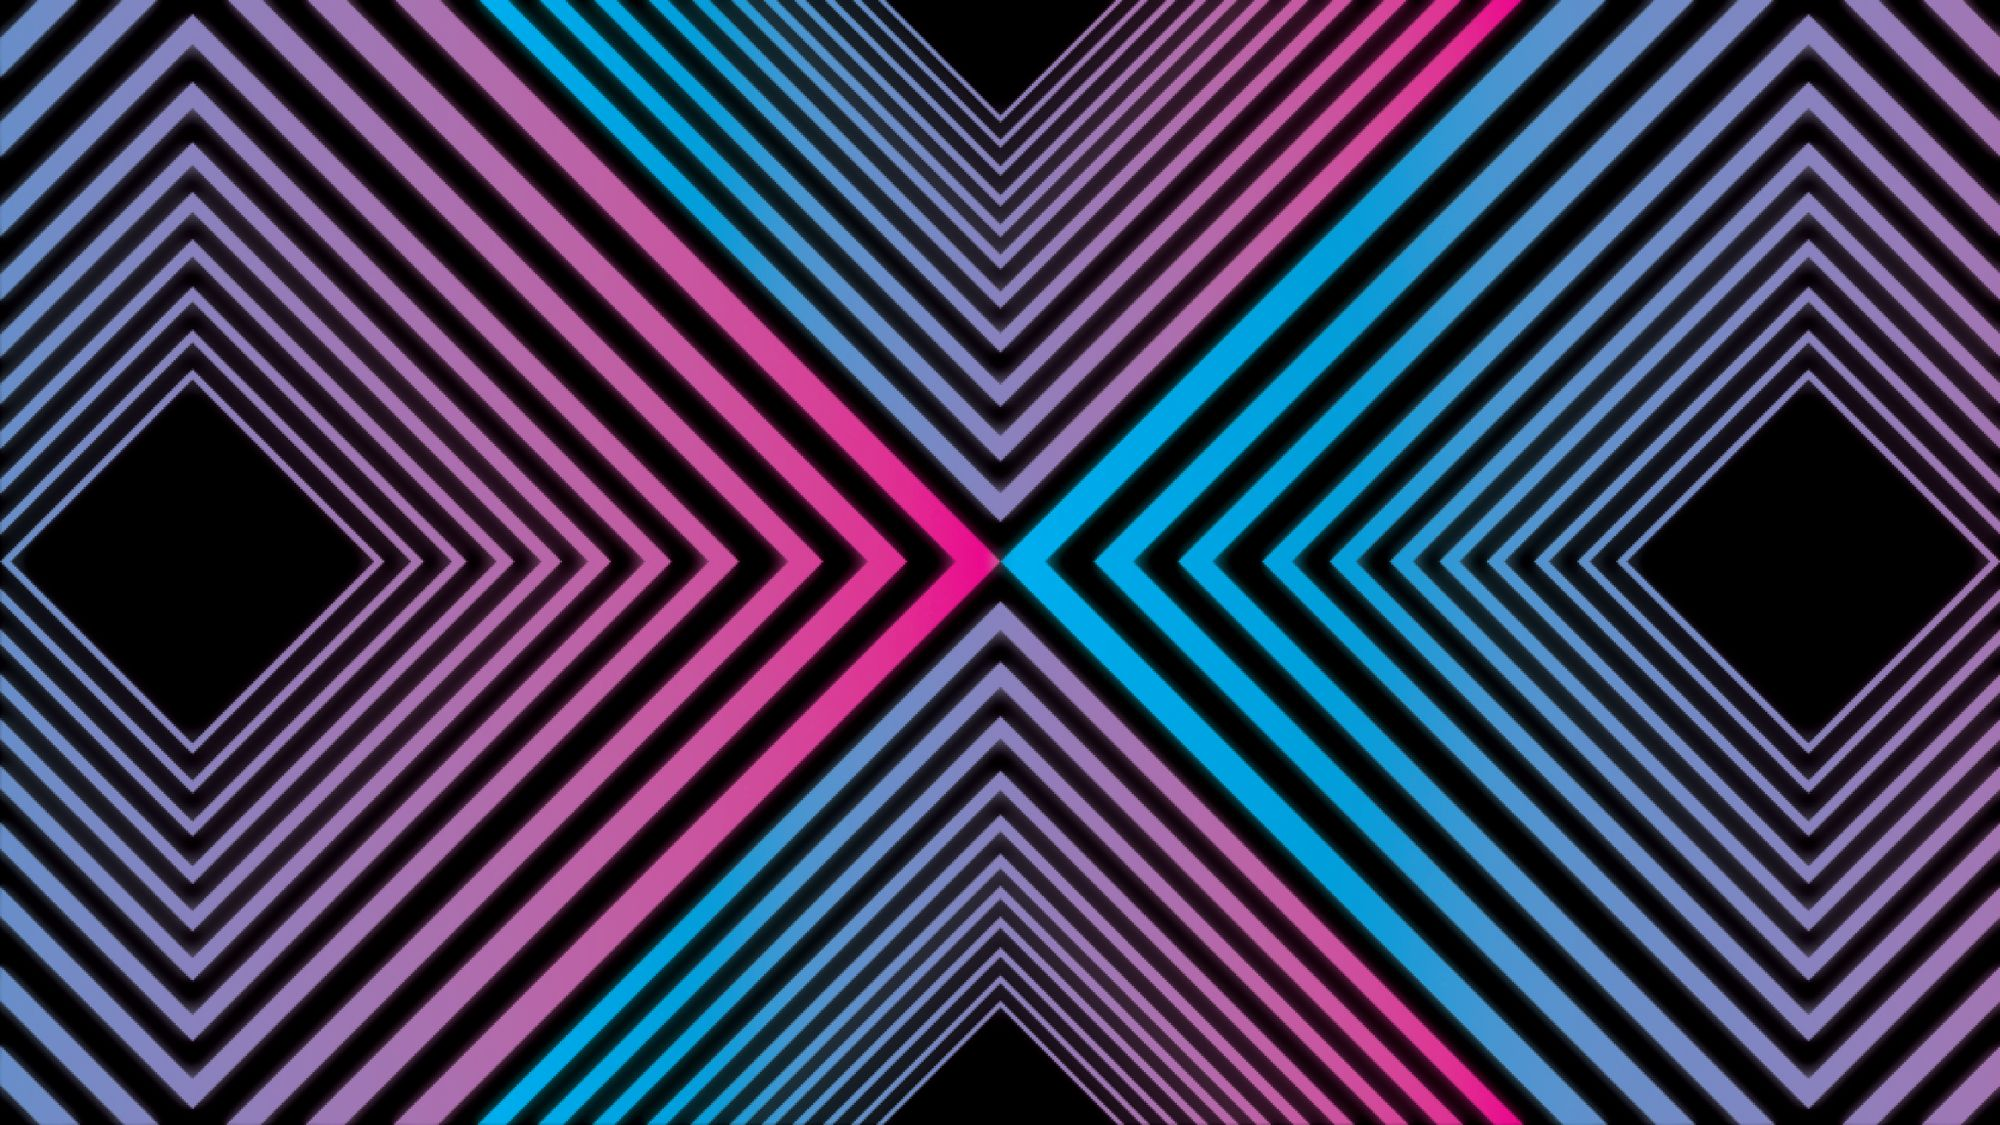 5K Abstract Wallpaper Backgrounds